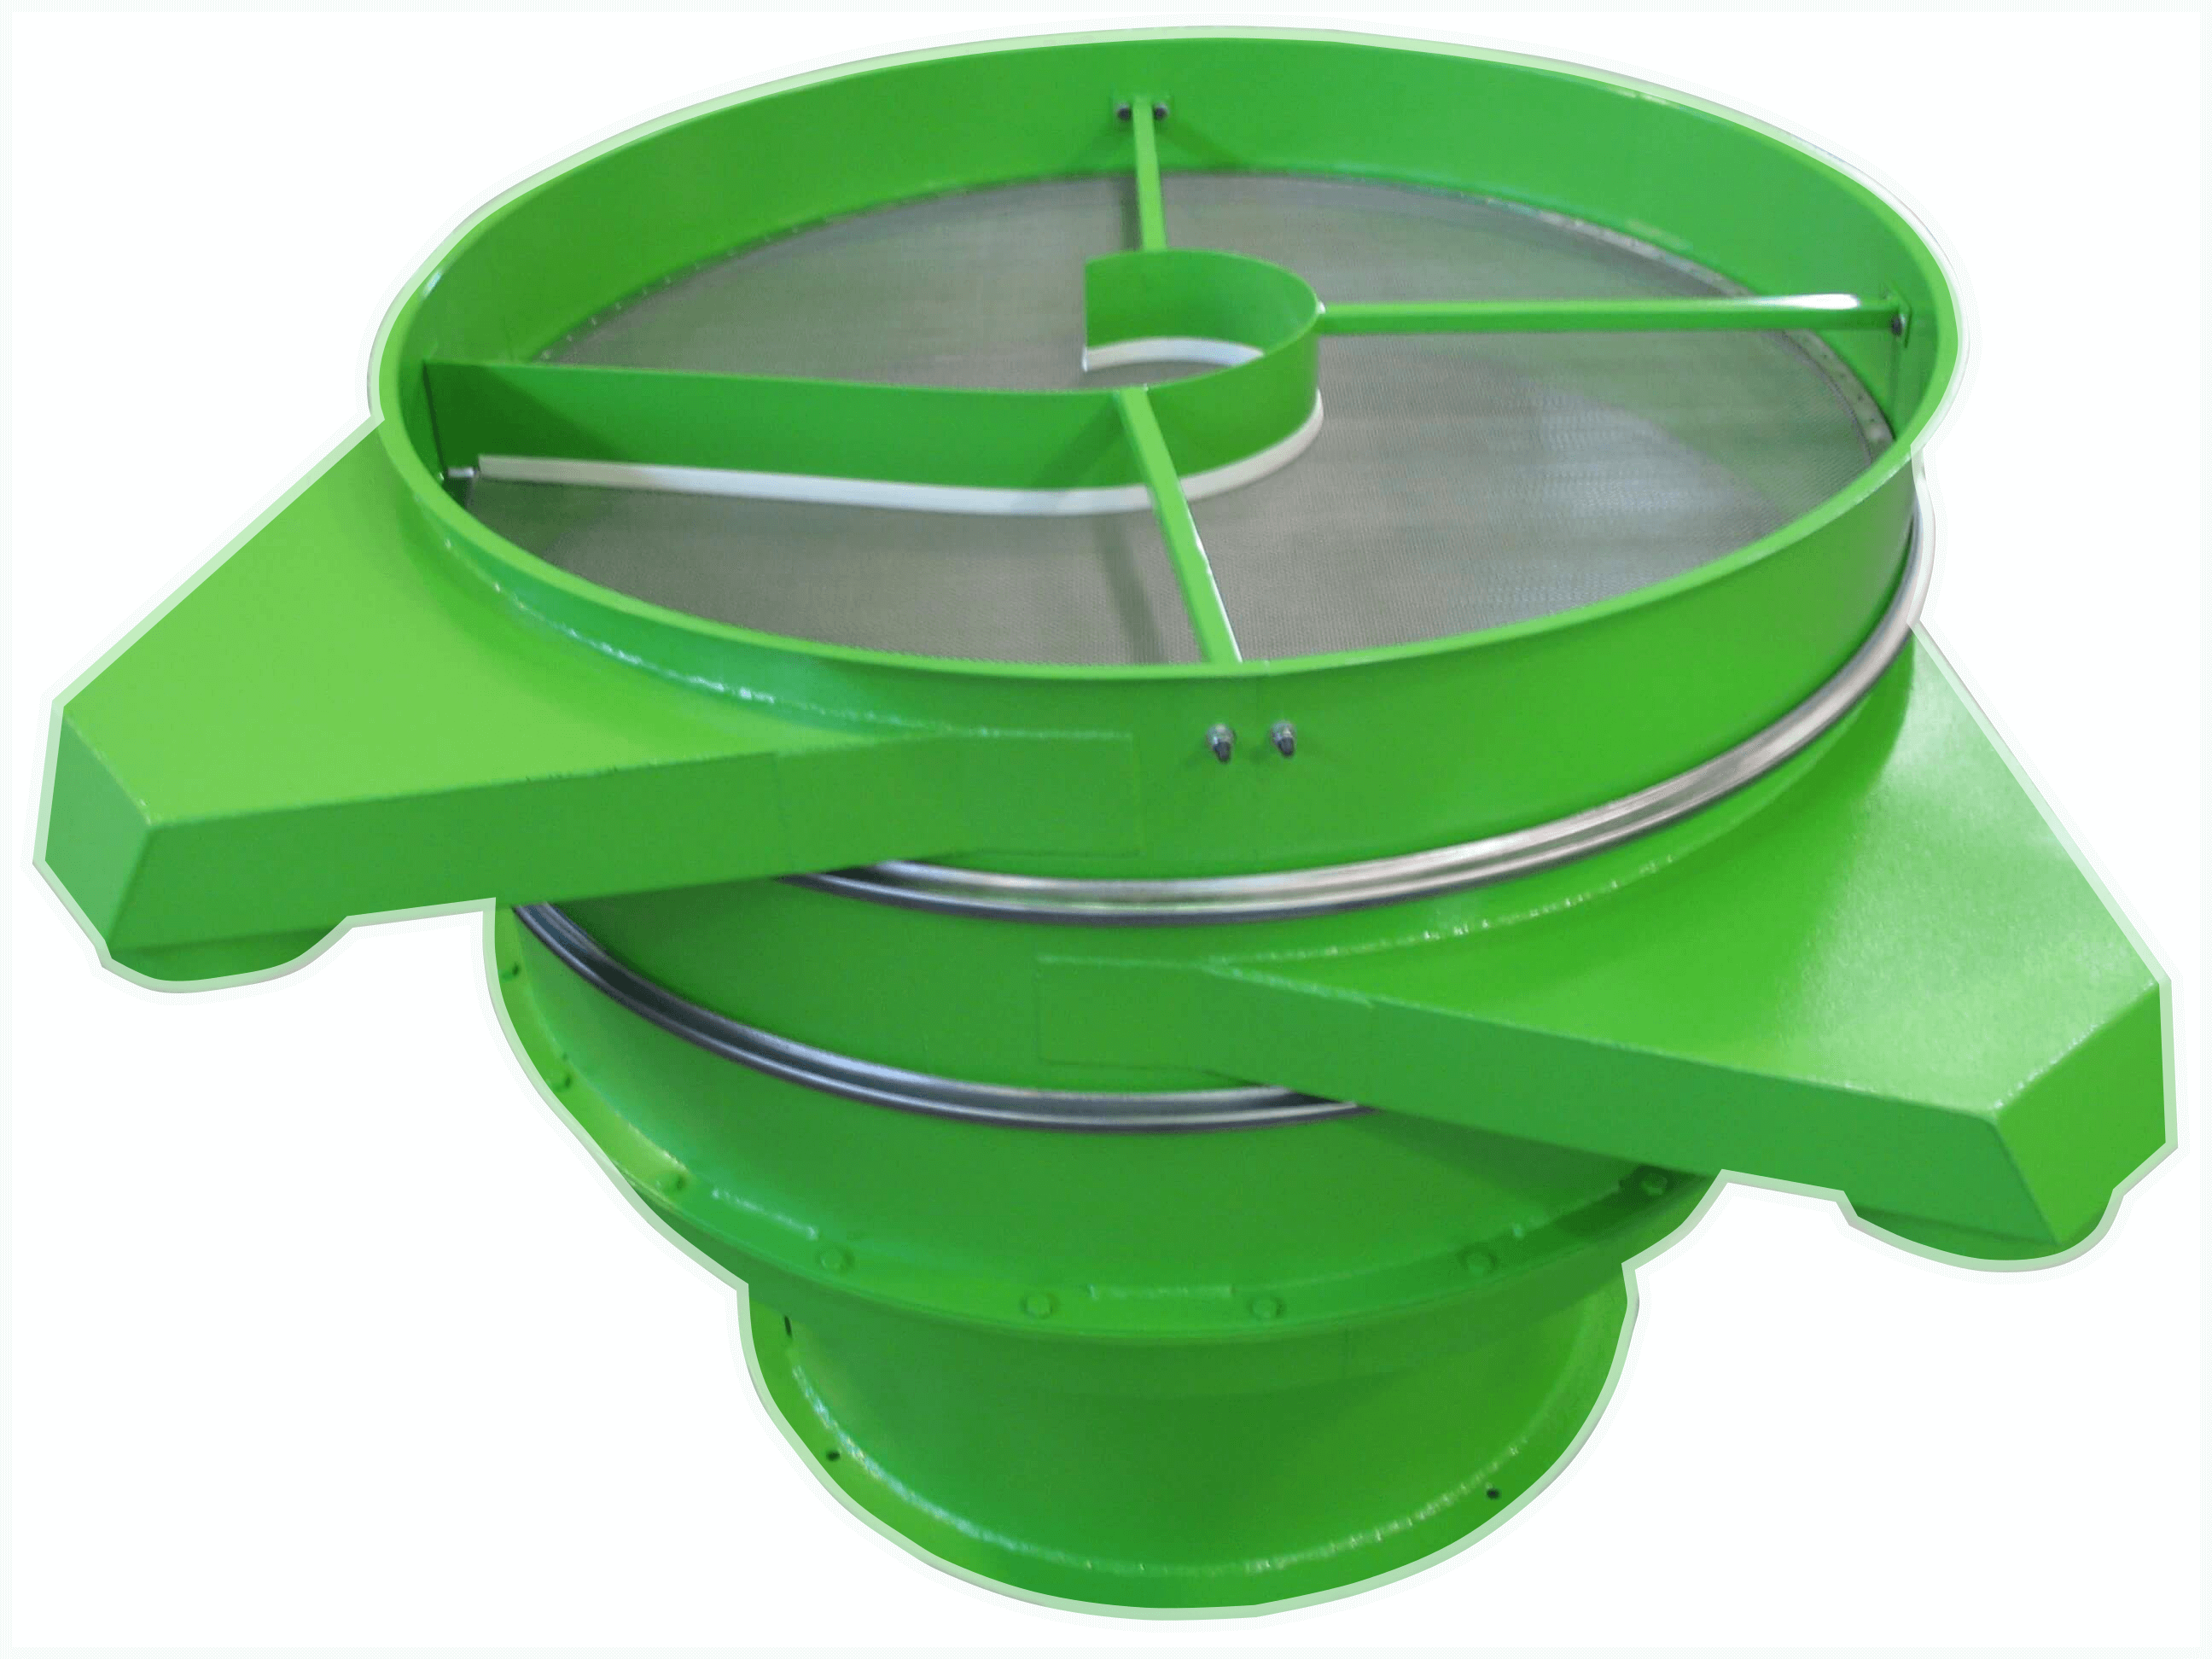 painted carbon steel vibrating sieve